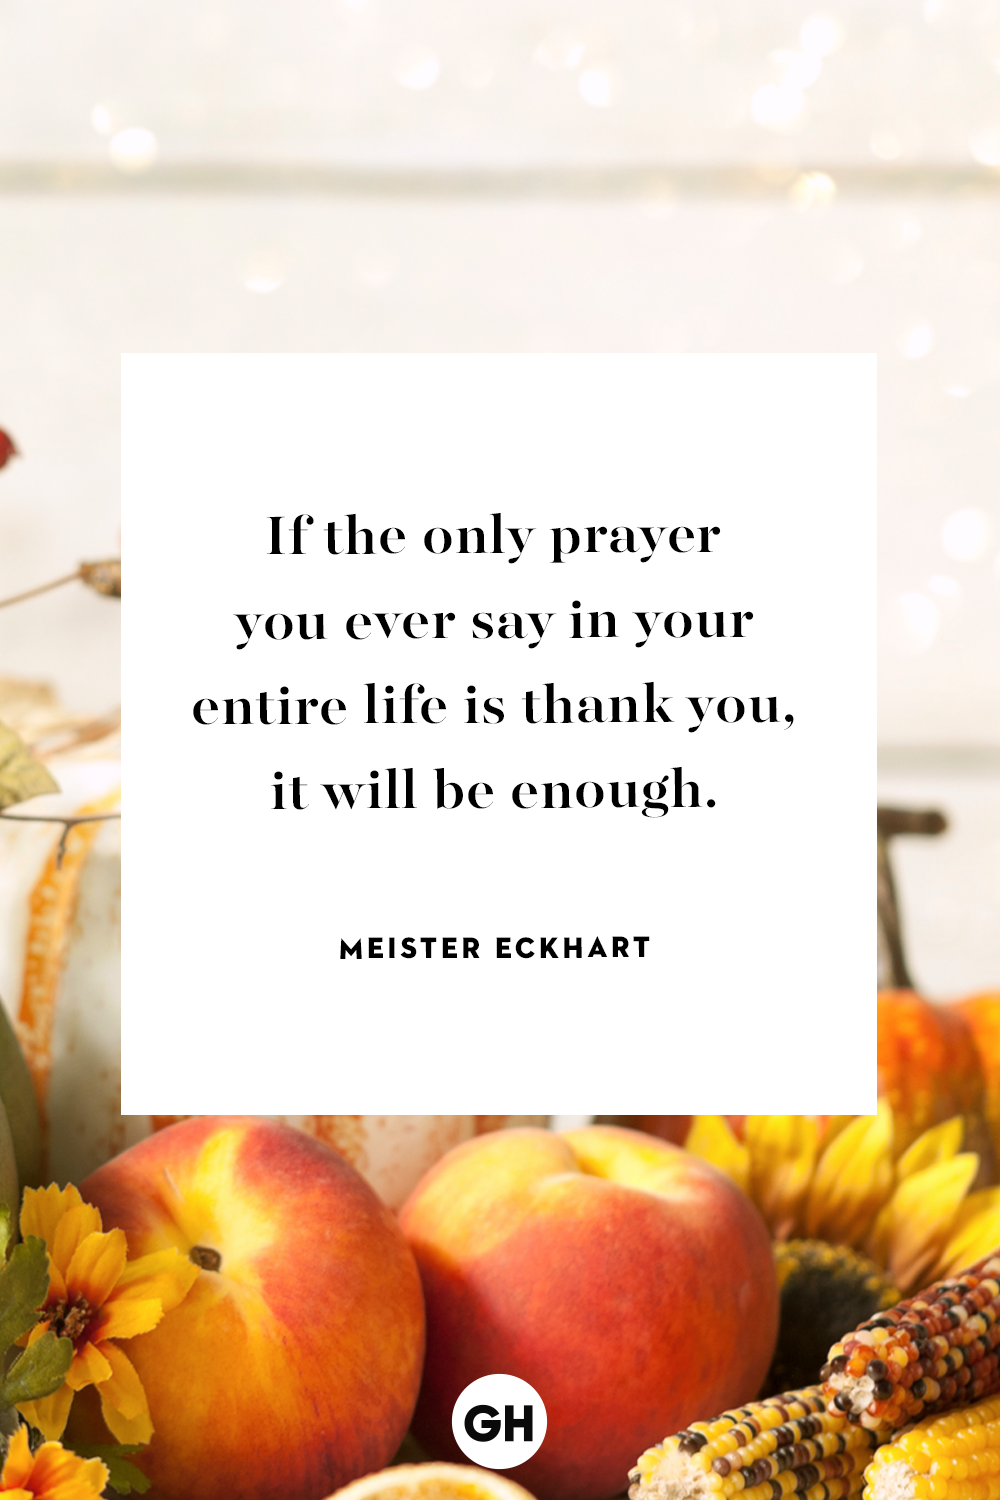 32 Best Thanksgiving Quotes - Inspirational and Funny Quotes